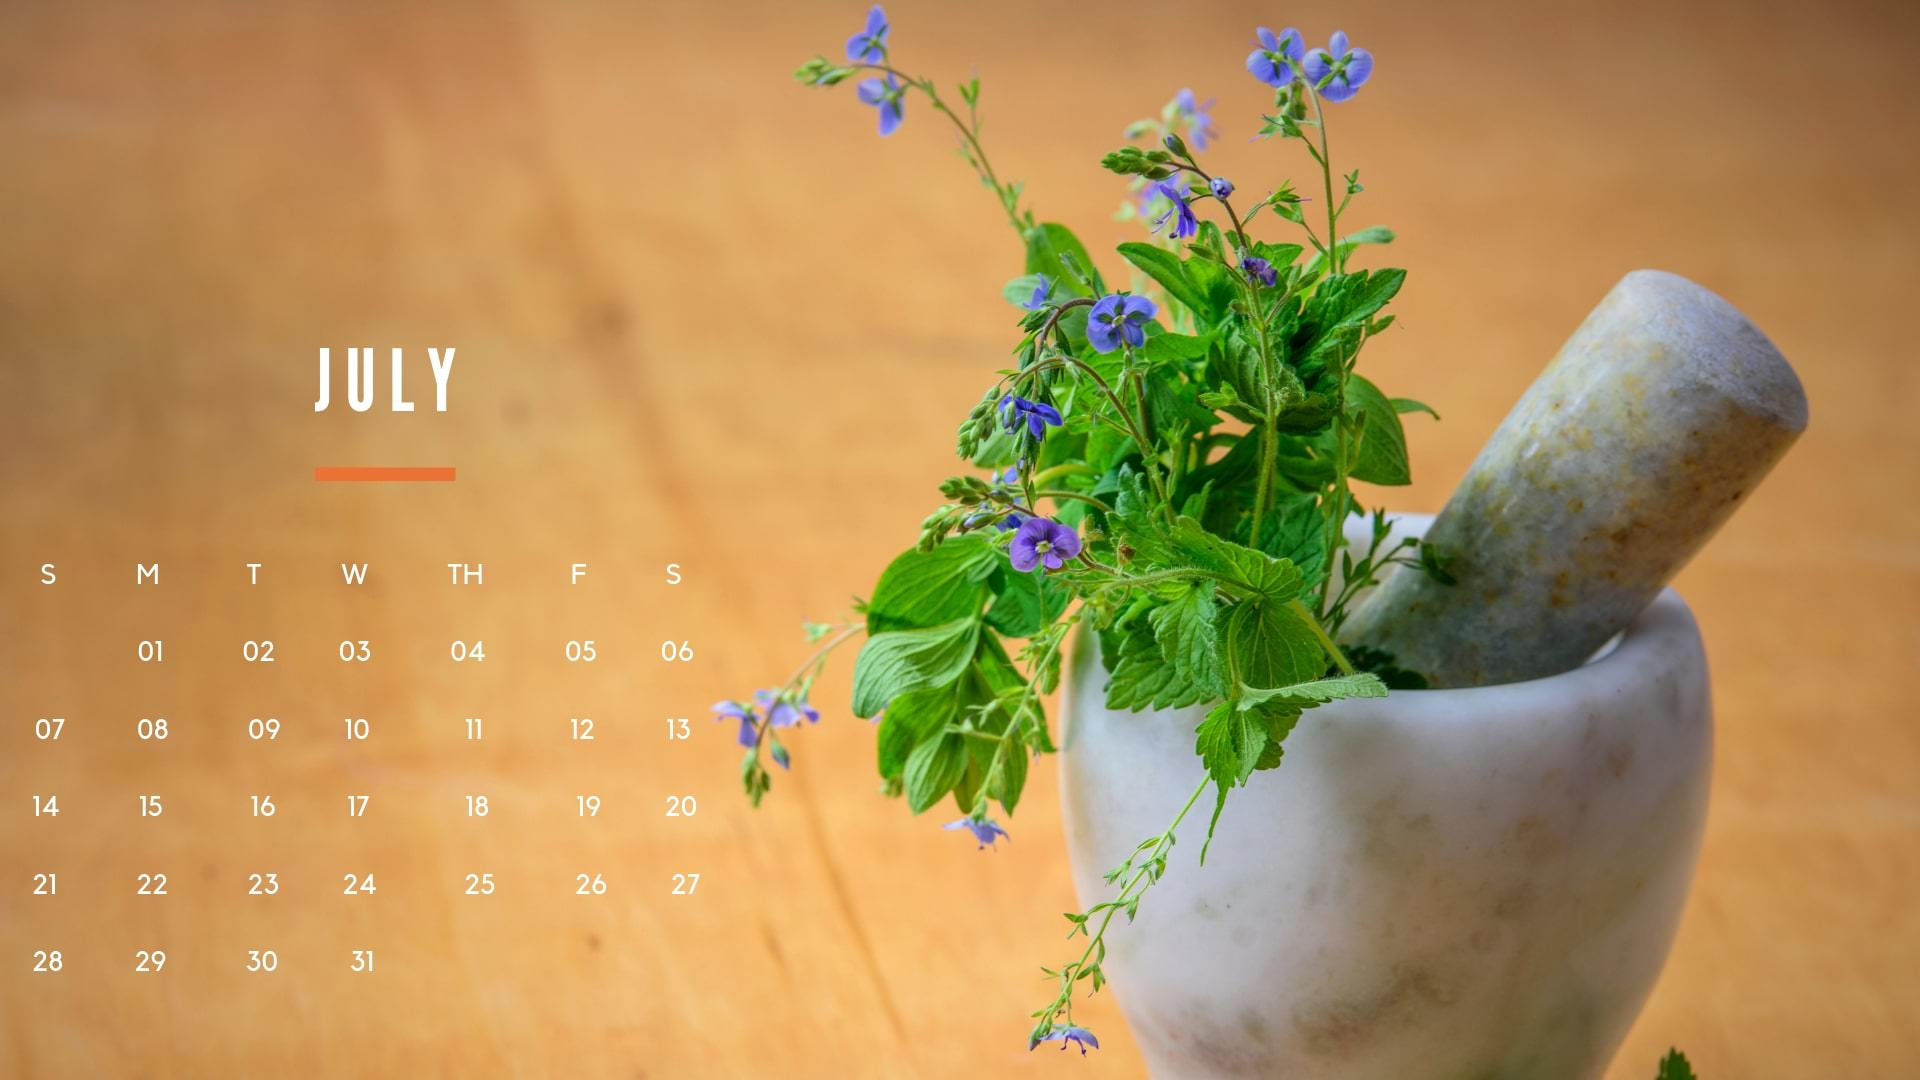 July 2019 Calendar Wallpaper